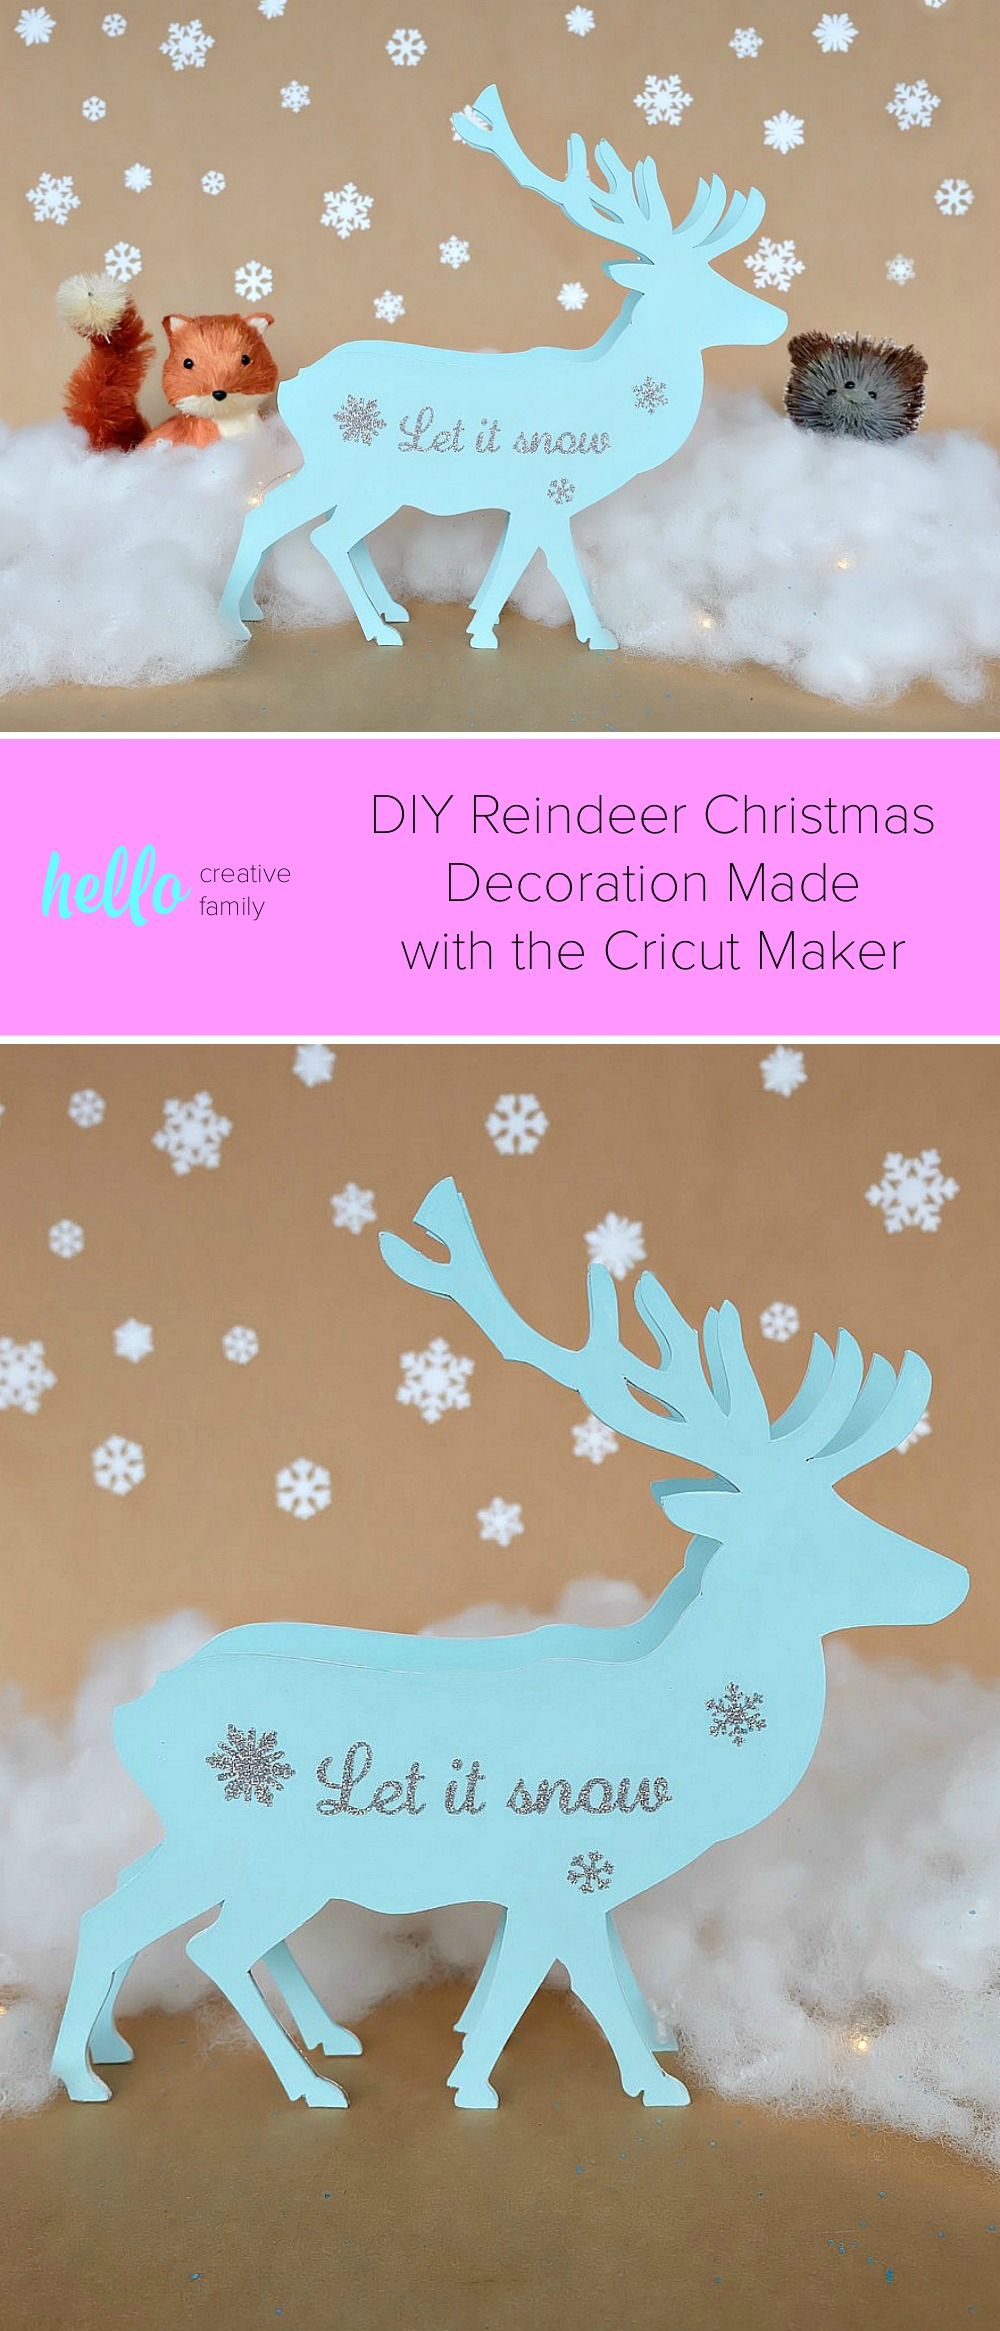 "This beautiful DIY reindeer Christmas Ornament is cut using the Cricut Maker! Decorated with ""Let It Snow"" it makes a beautiful handmade gift idea! This step by step tutorial with photos teaches you how to cut chipboard using your Cricut Maker to make beautiful home decor items. Make handmade reindeer decorations as teacher gifts, gifts for mom, or gifts for a friend. #HandmadeGift #CricutMaker #Christmas #Reindeer #sponsored"